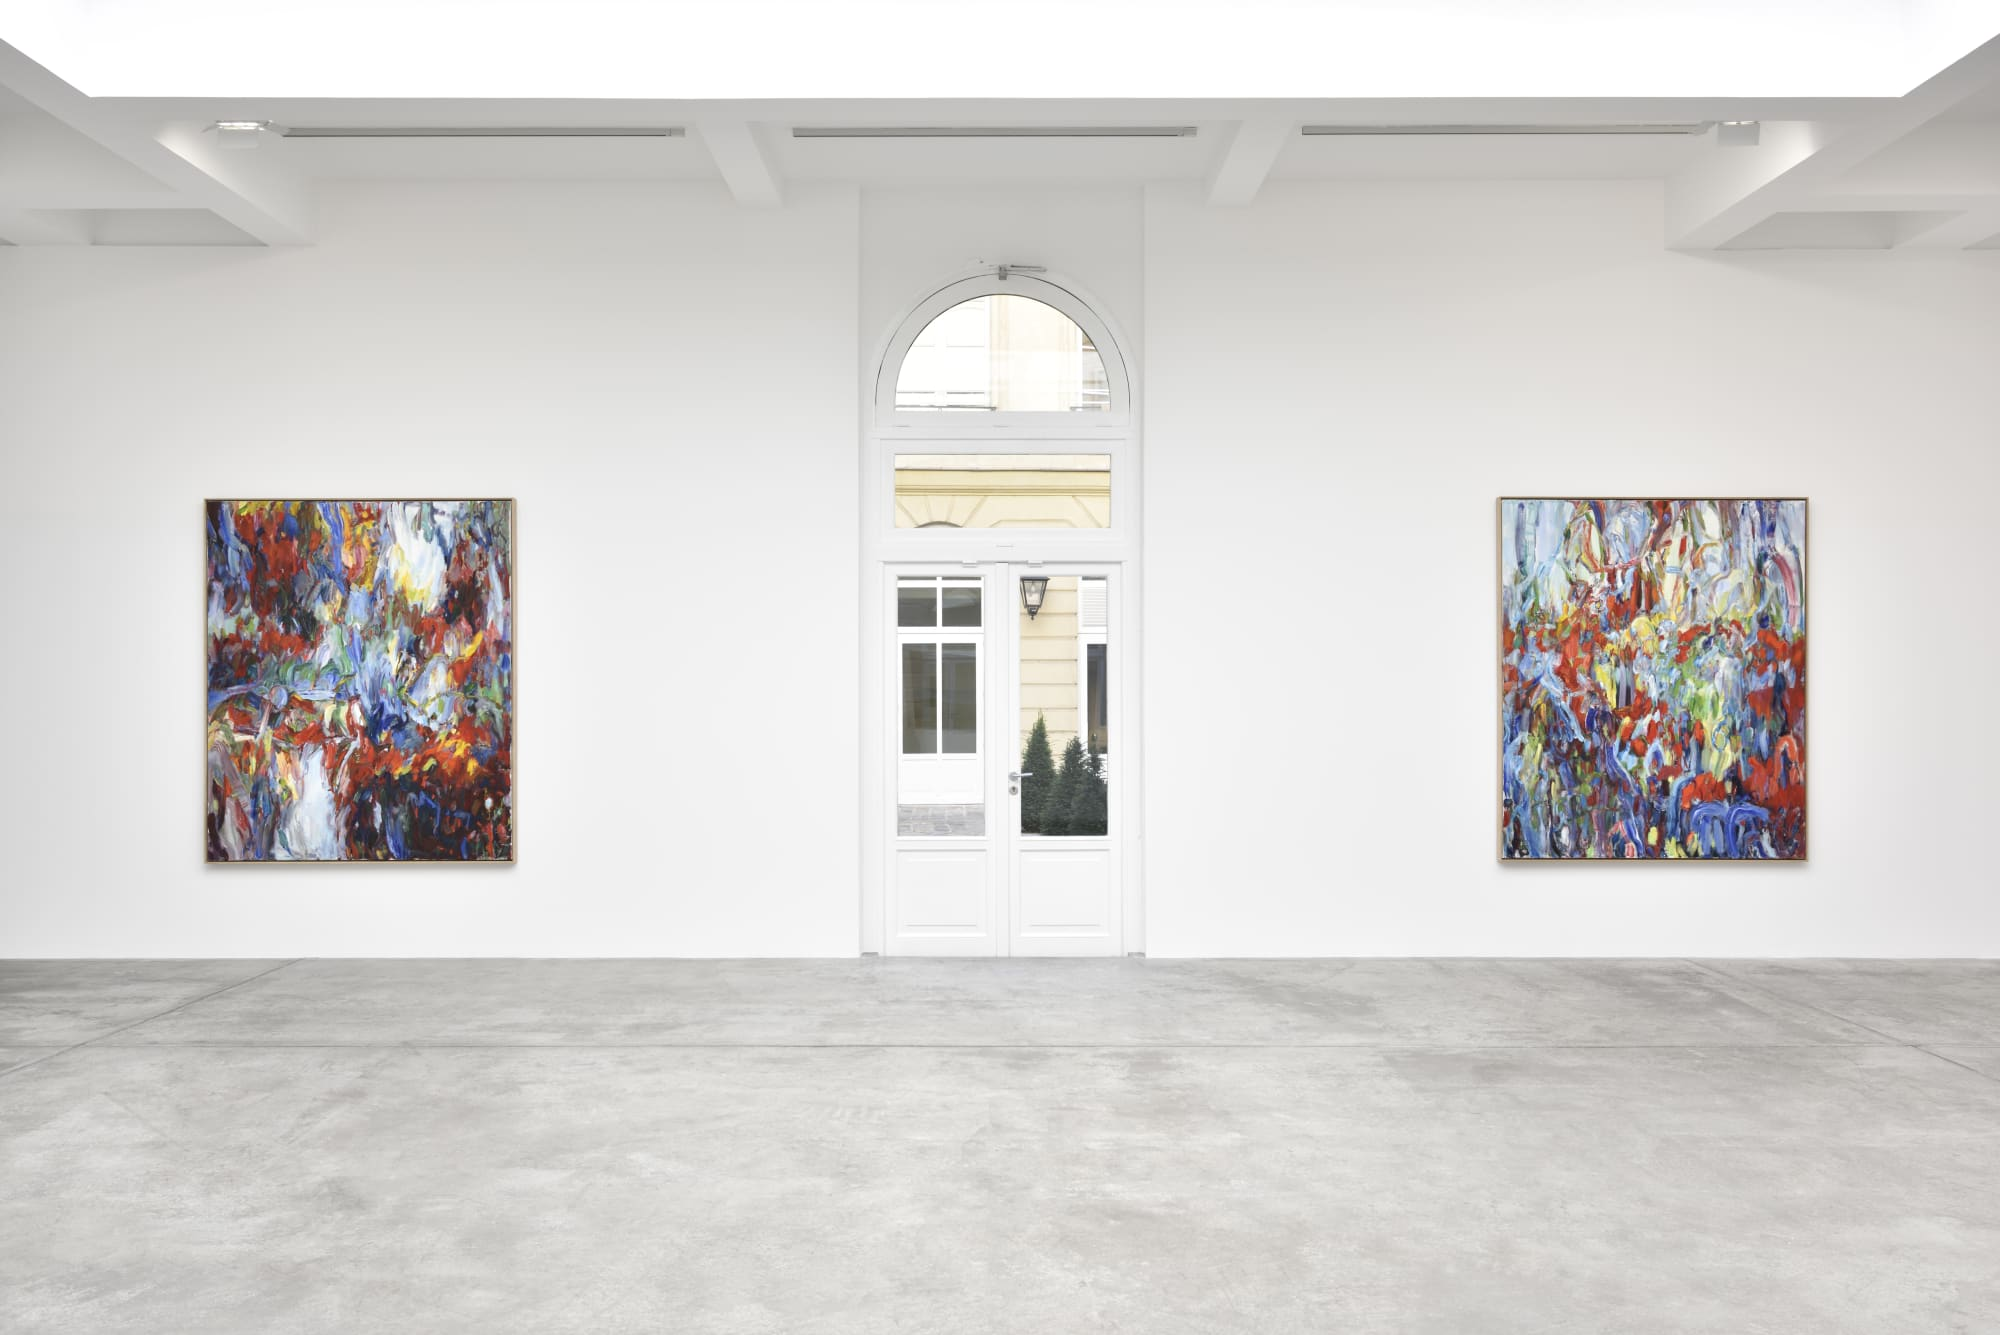 Gallery view of two colorful abstract paintings by Sabine Mortiz on either side of a doorway.